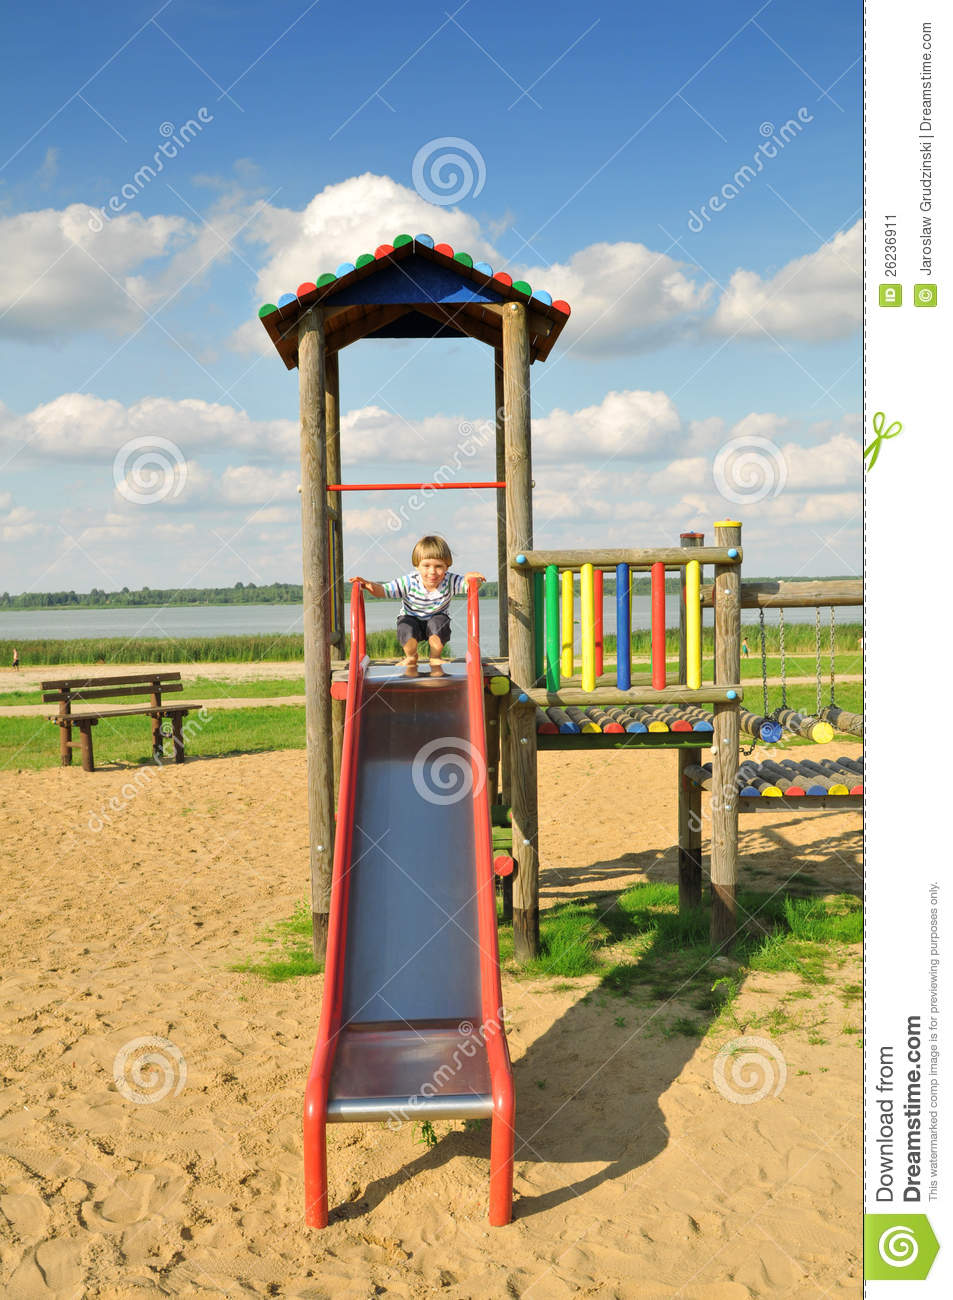 Cute little boy playing in the playground